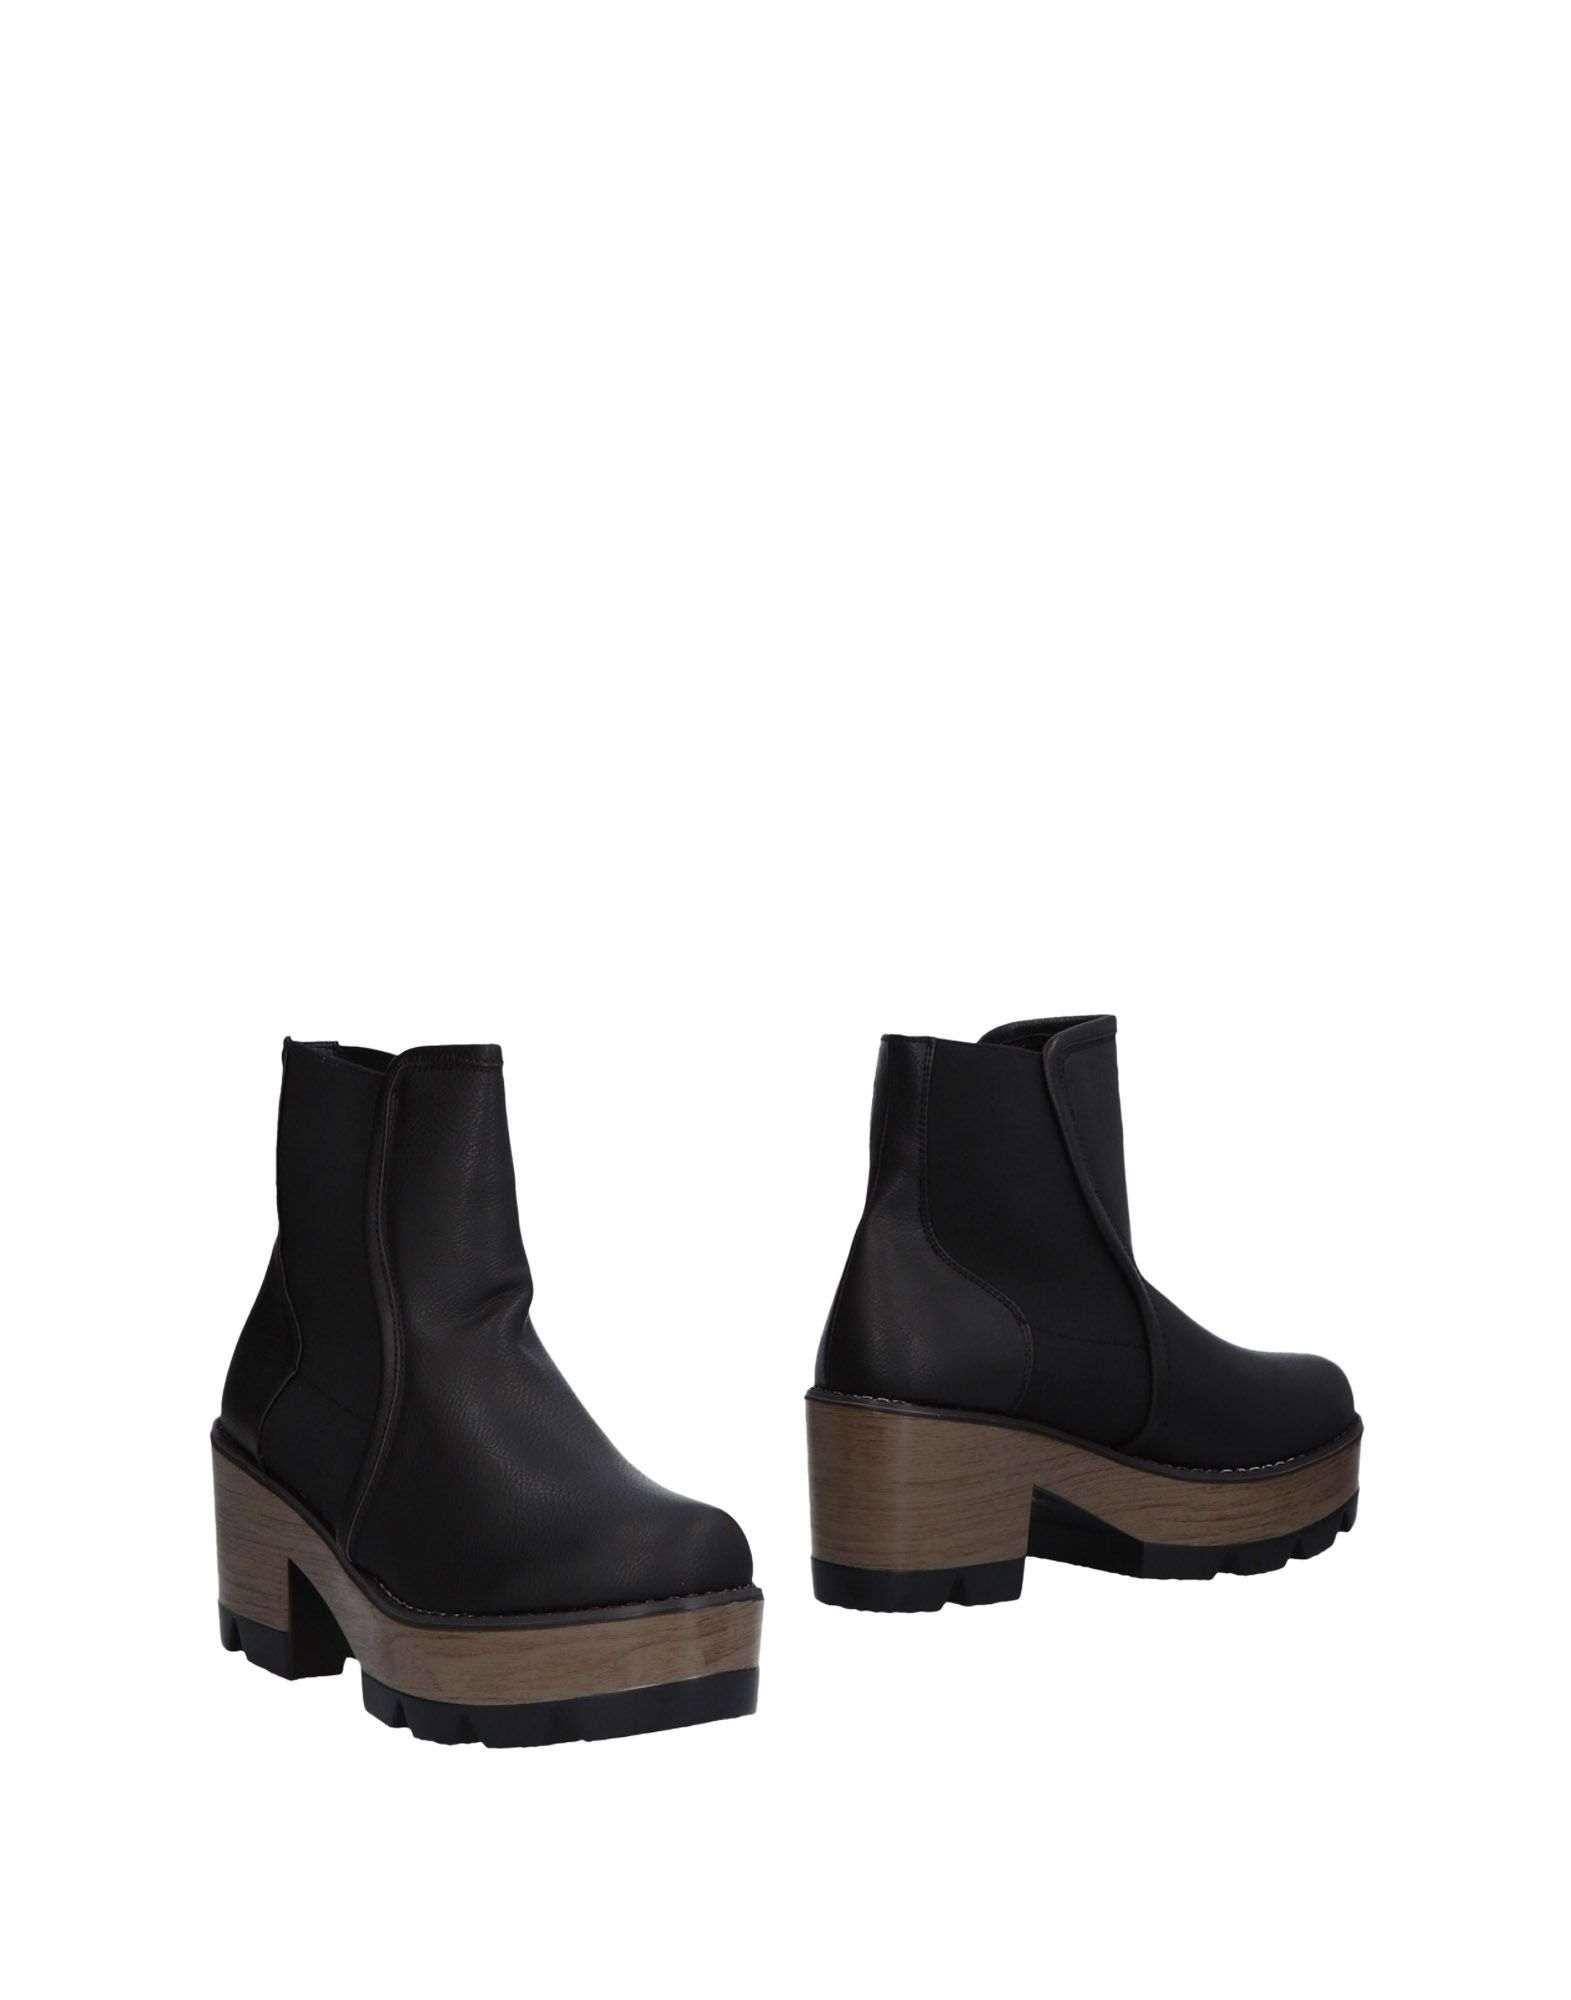 Police 883 Ankle Boot - Women Police 883 Ankle Boots - online on  Australia - Boots 11477150NK 85d716